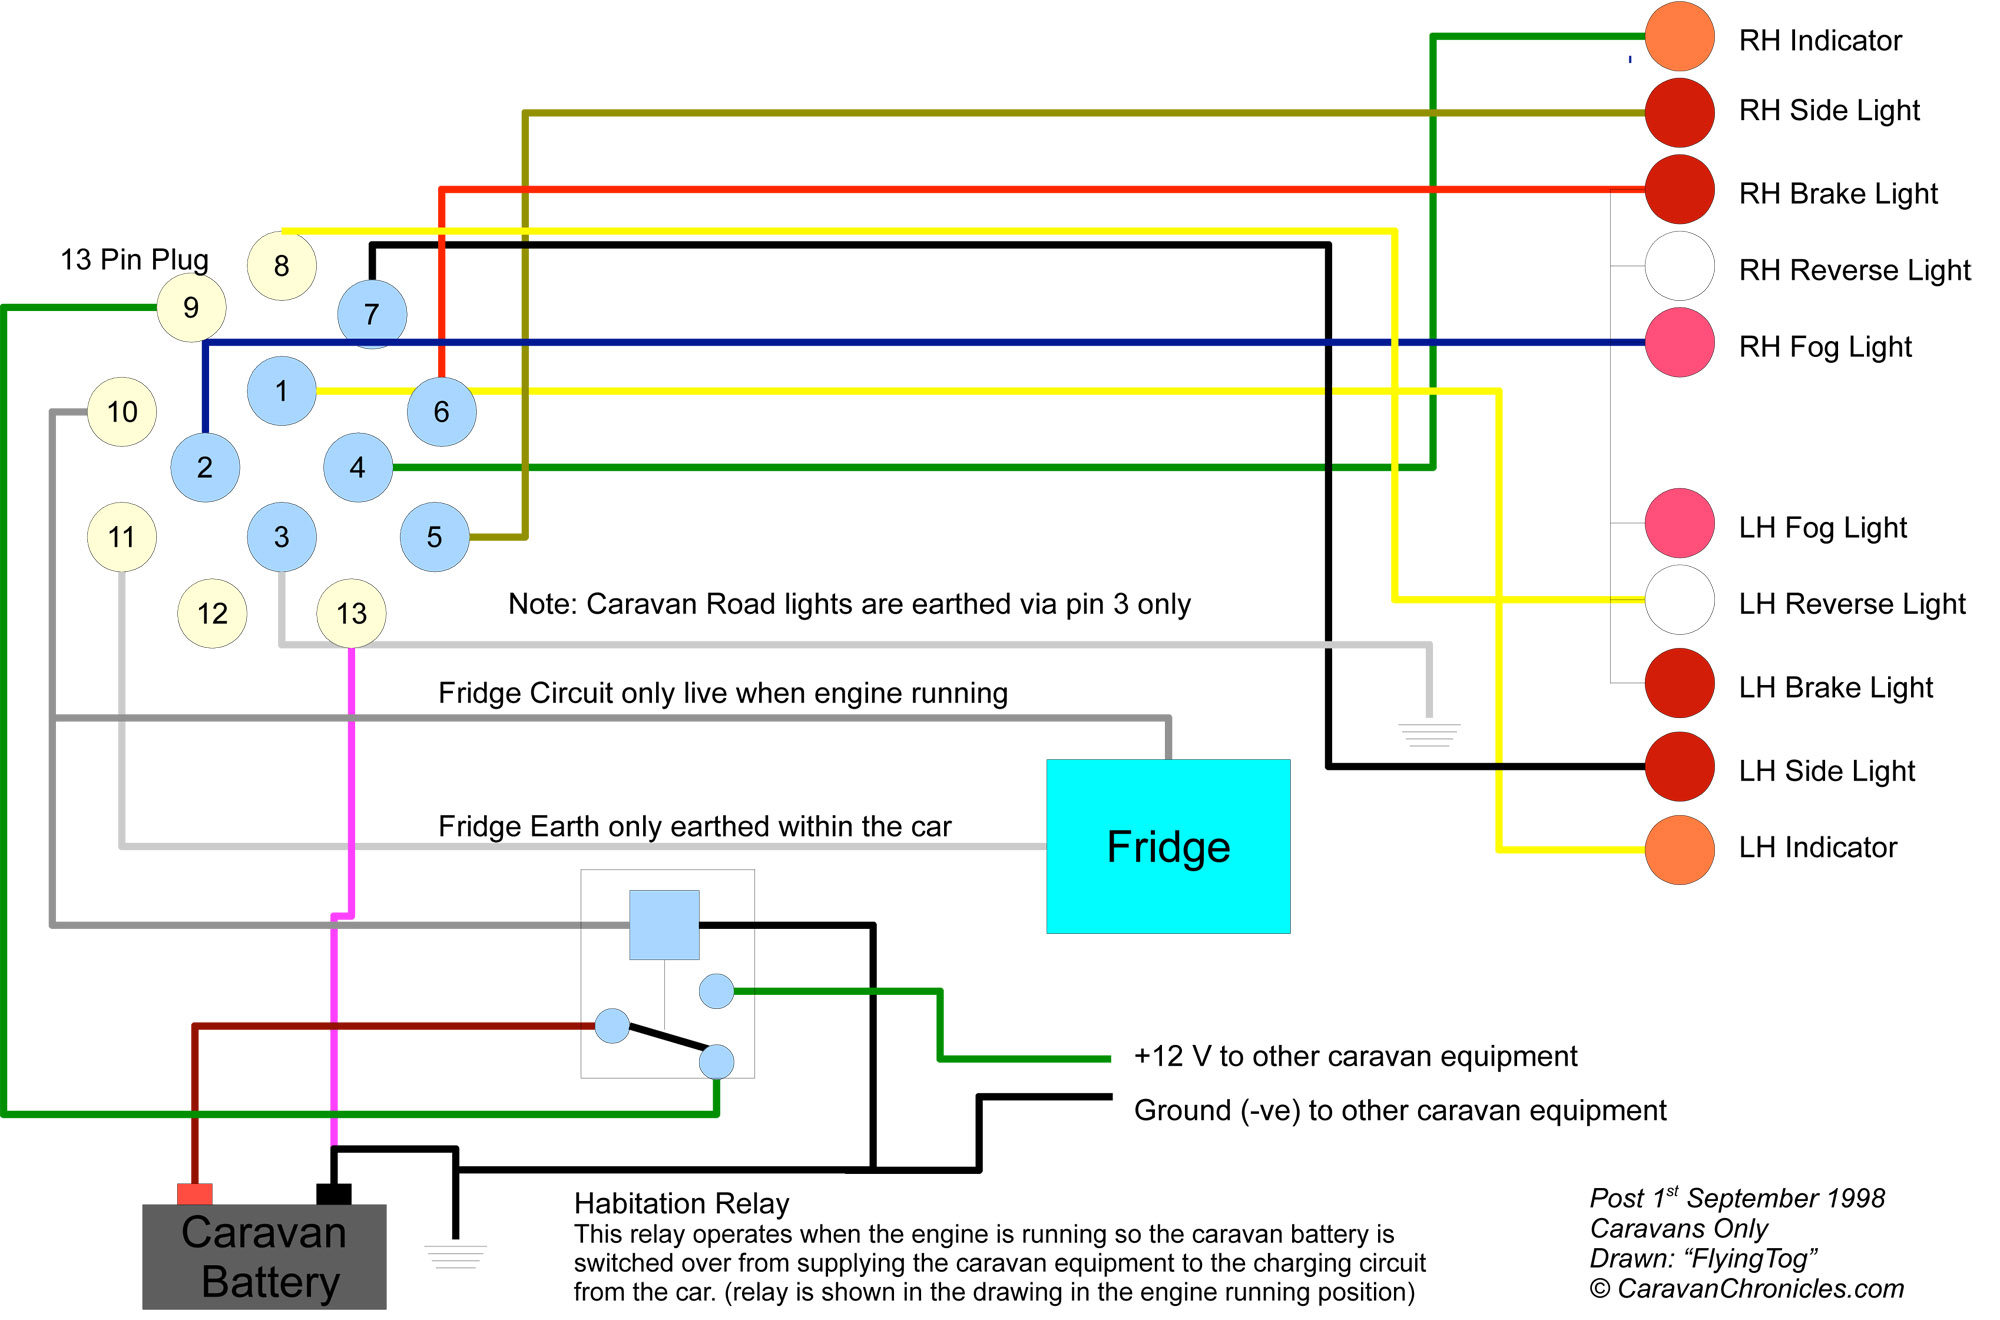 flatbed trailer wiring diagram free picture schematic wrg 4500  wiring caravan fridge diagram  wrg 4500  wiring caravan fridge diagram